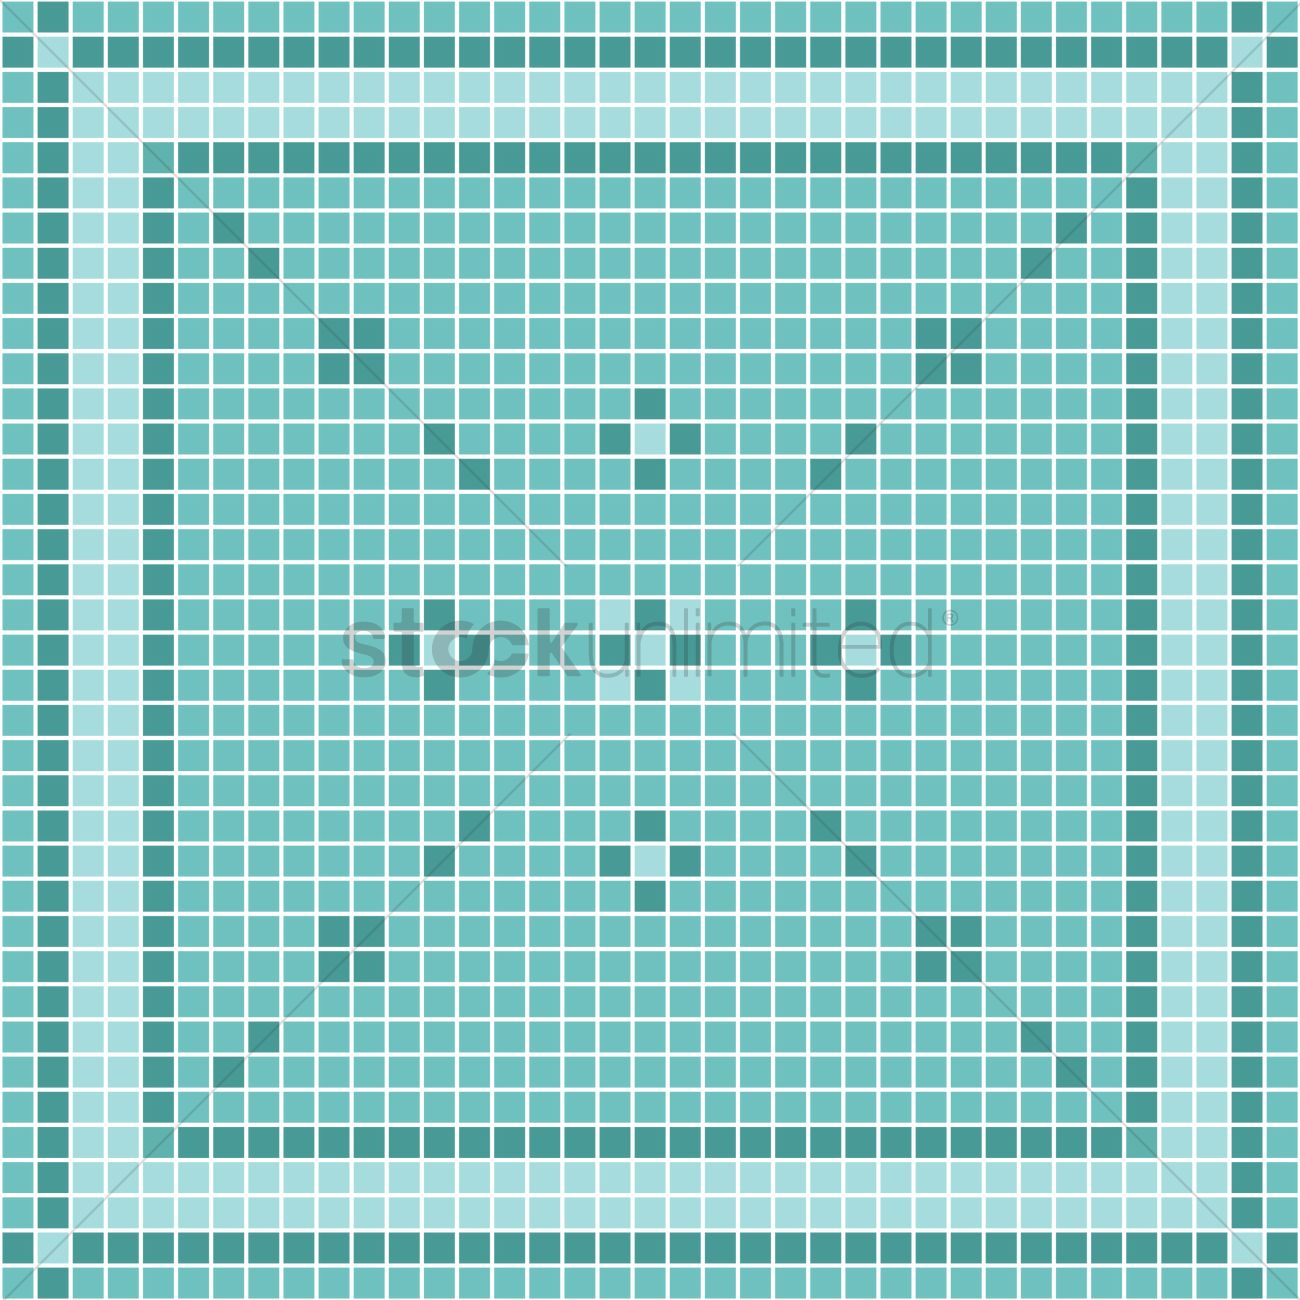 Mosaic tiles background Vector Image - 1562934 | StockUnlimited